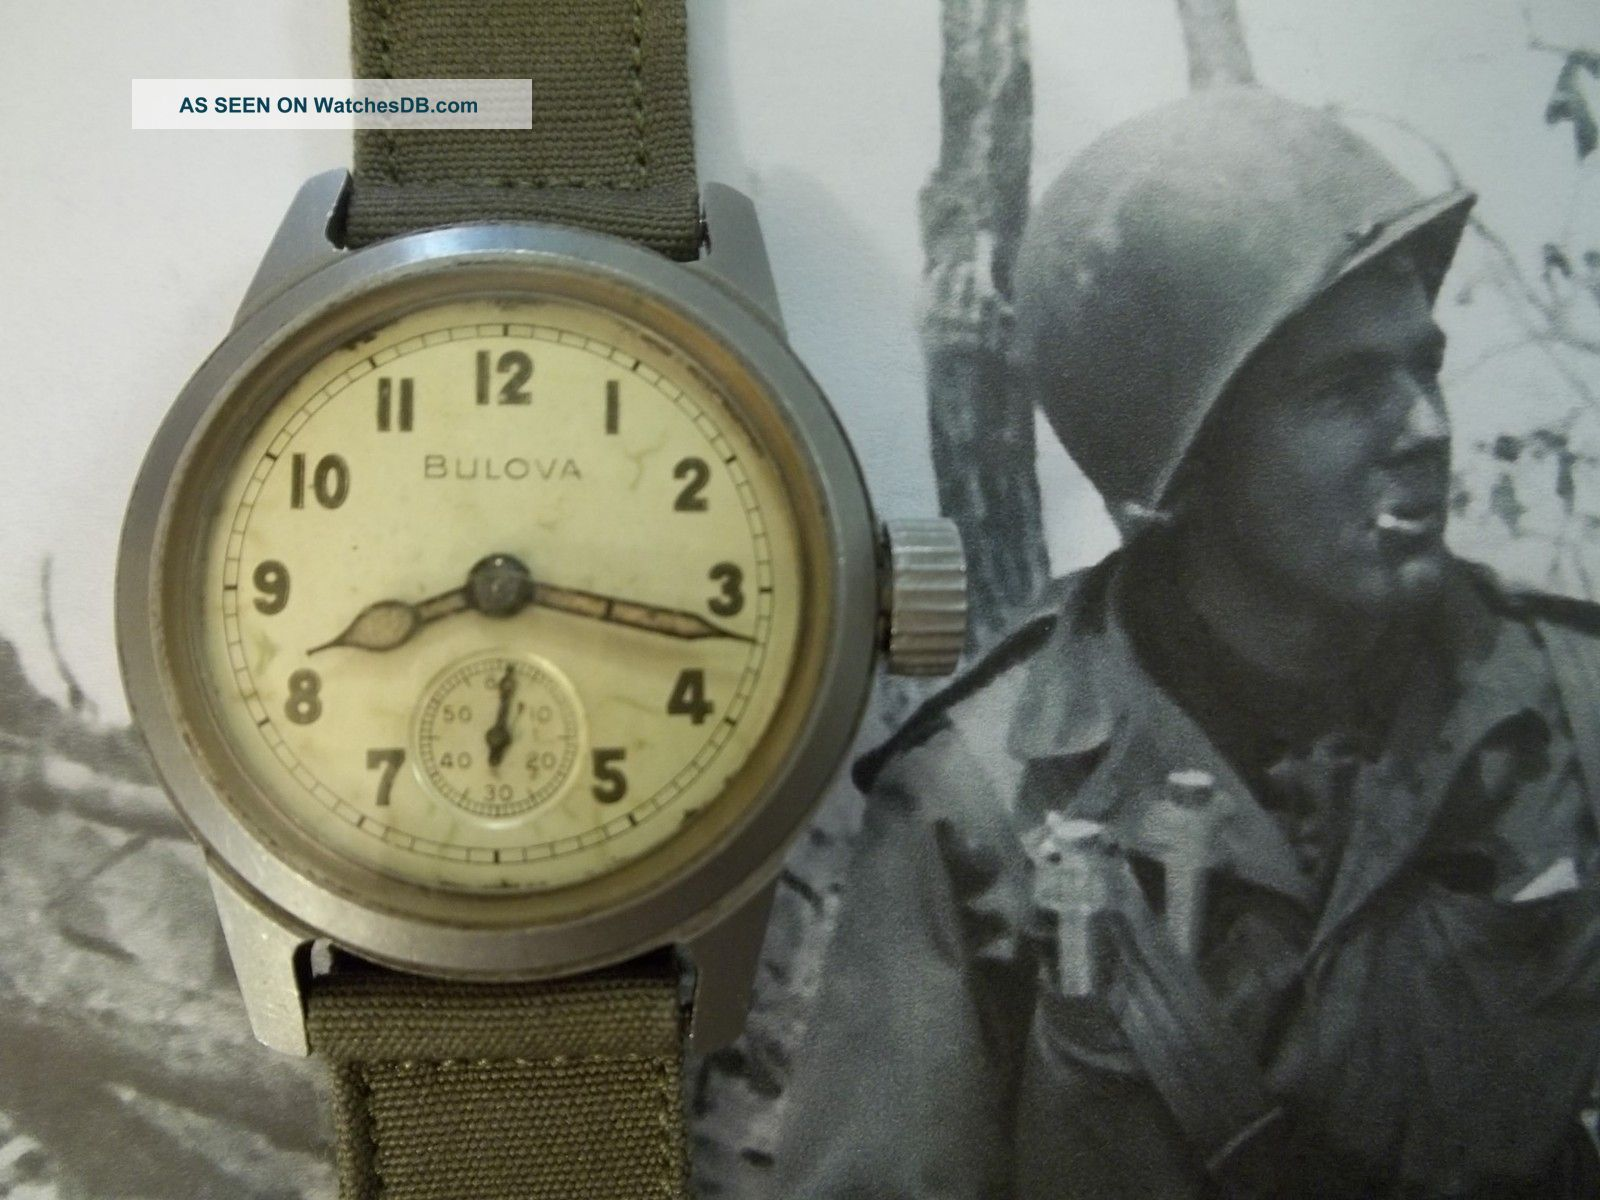 flickr u s watches commons army wikimedia ranger file training wiki the